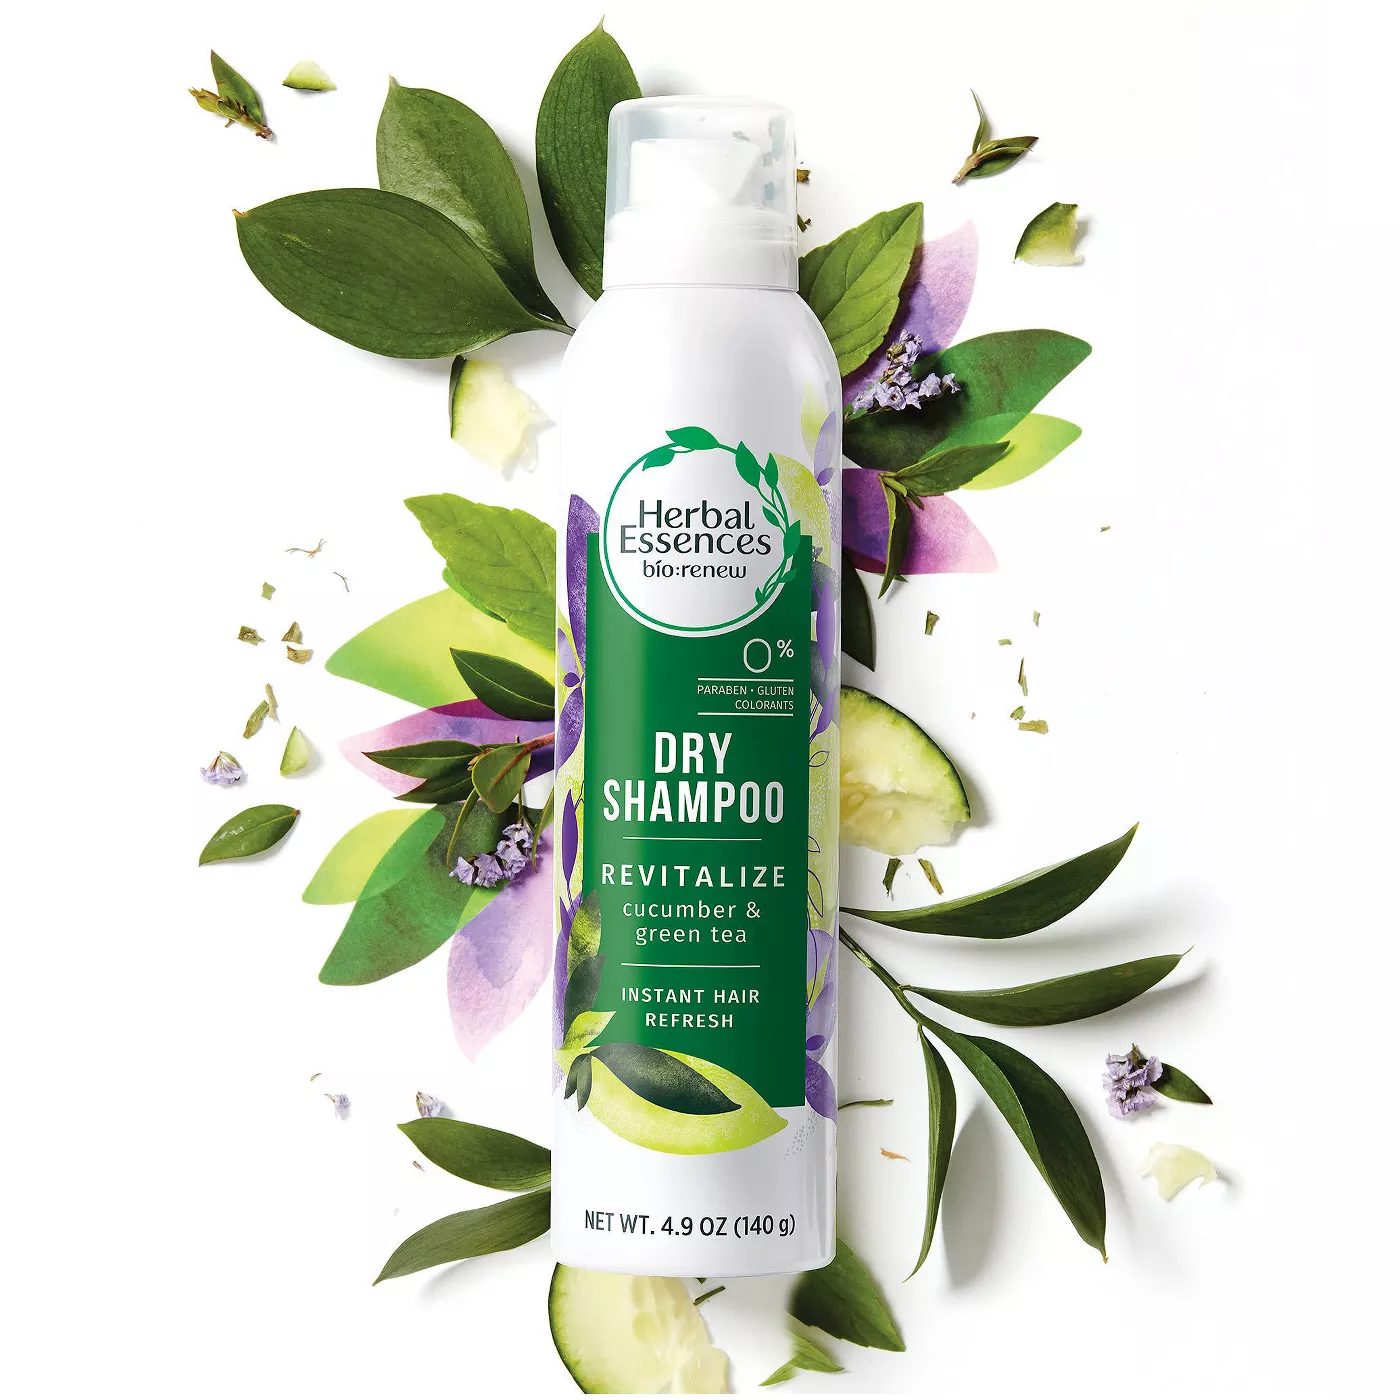 Bio_Renew_Revitalize_Cucumber___Green_Tea_Dry_Shampoo_From_Herbal_Essences_3.png